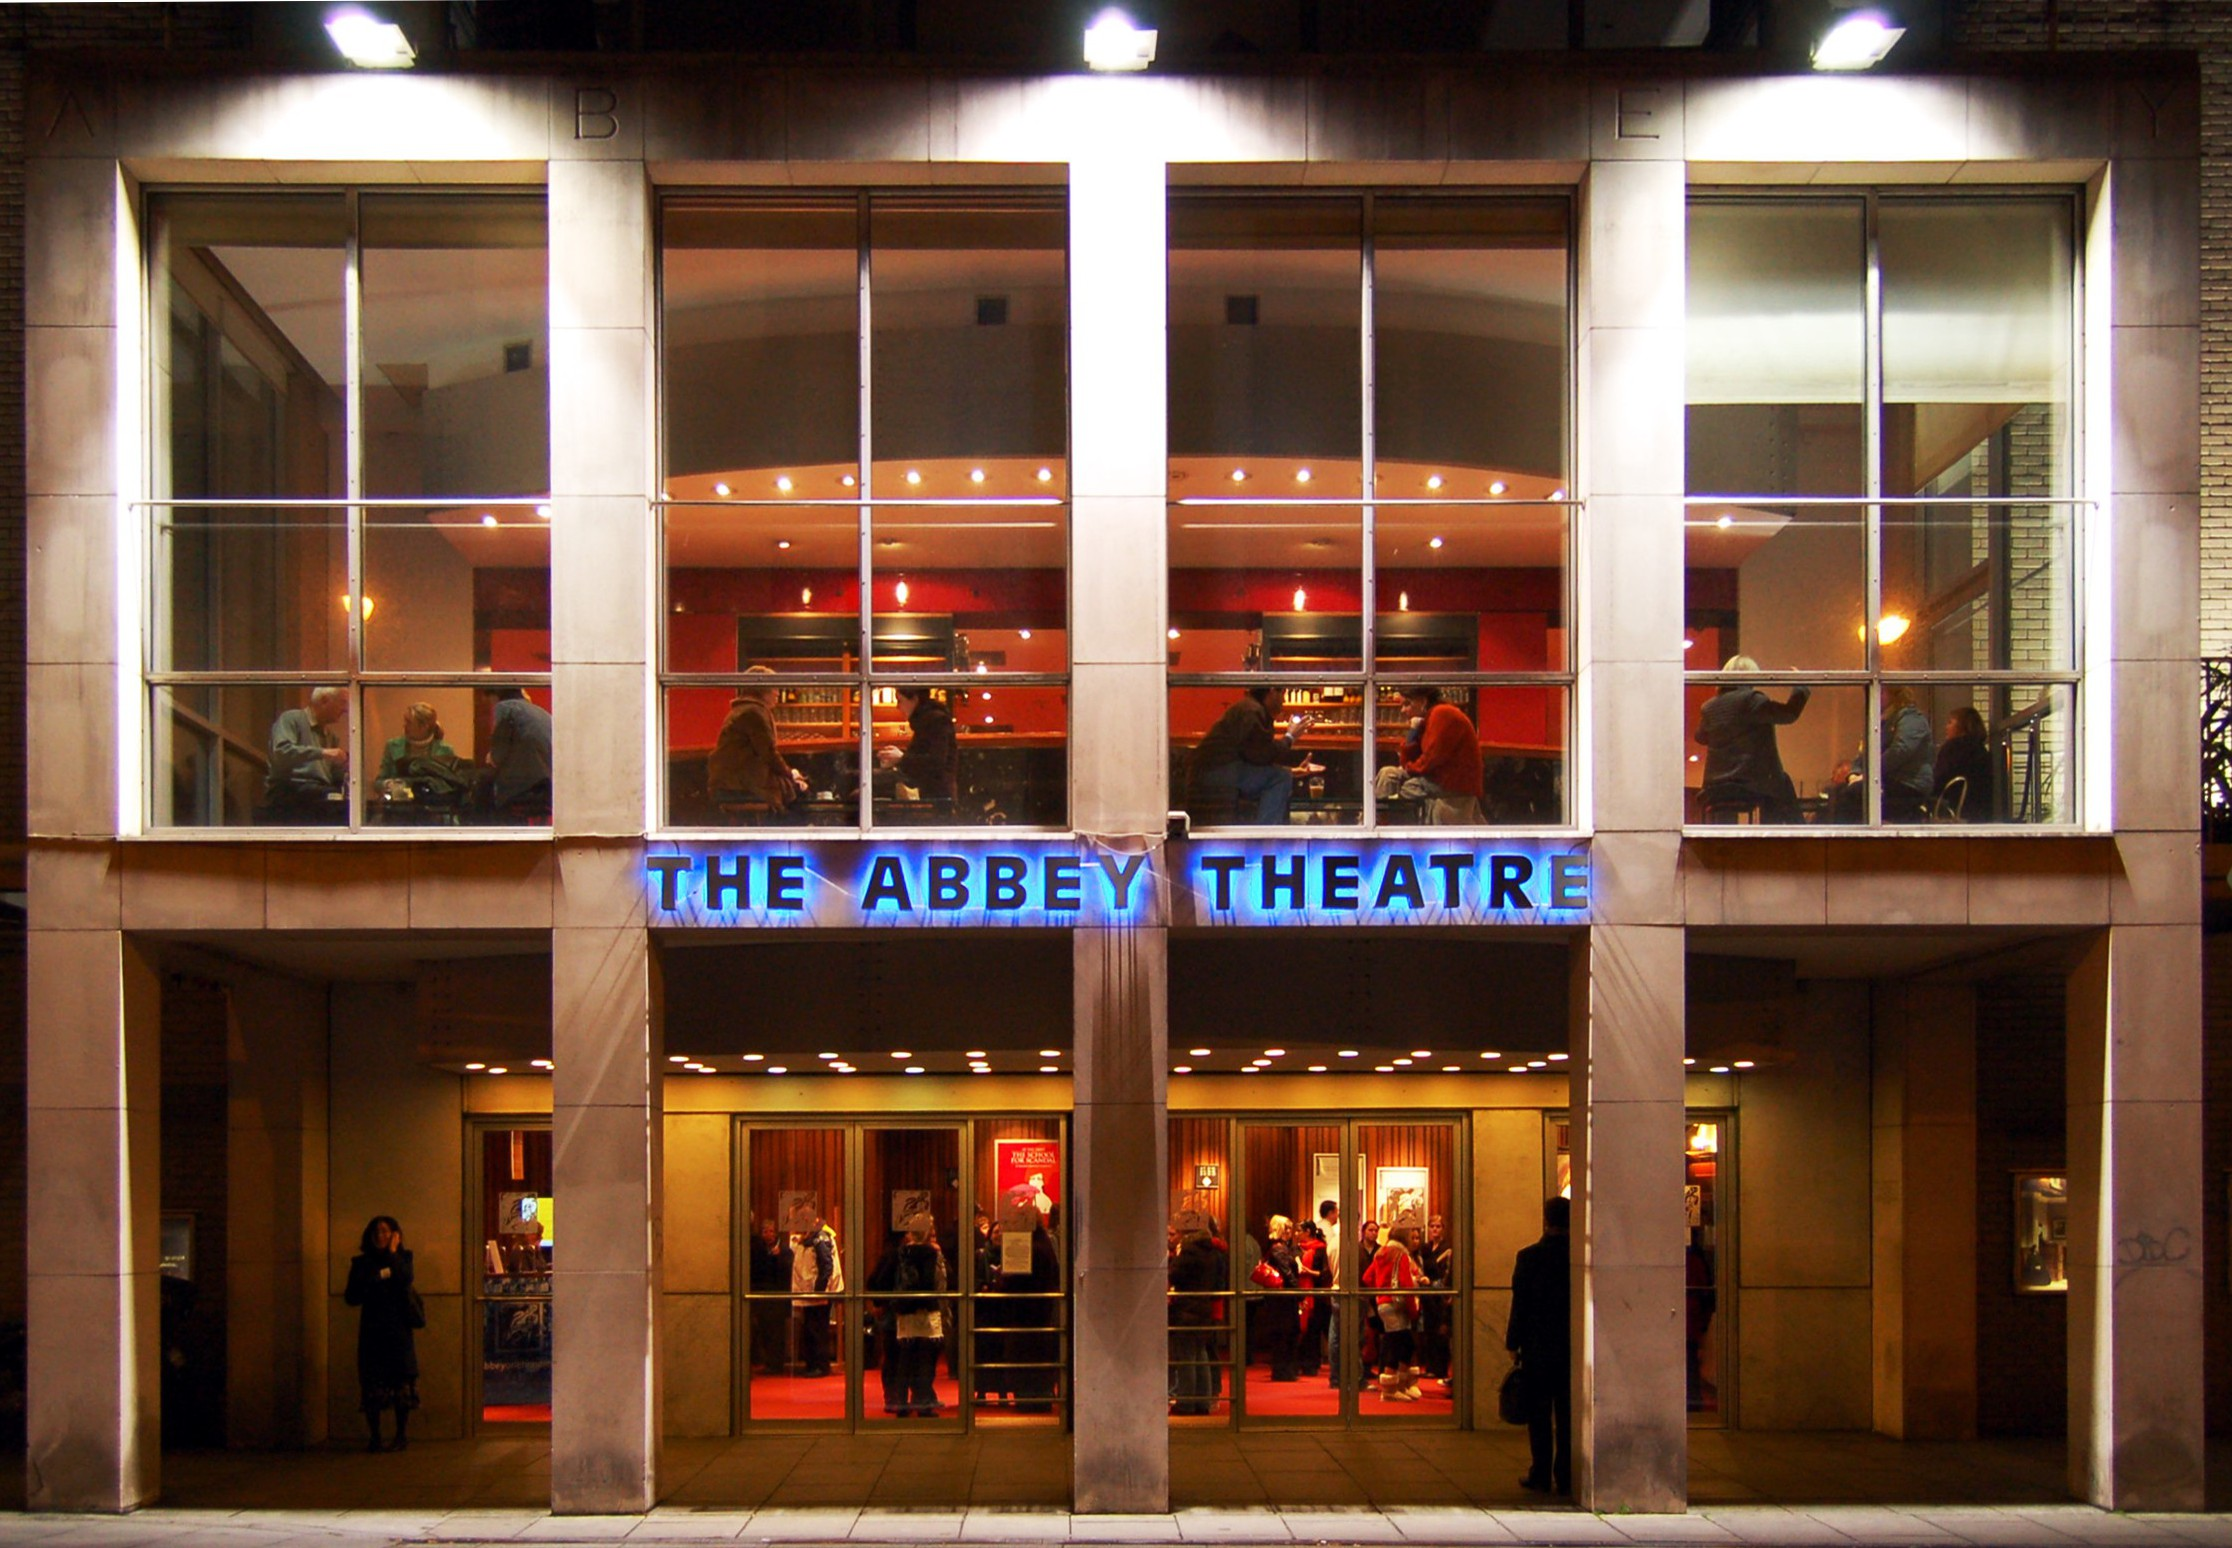 The Abbey Theatre